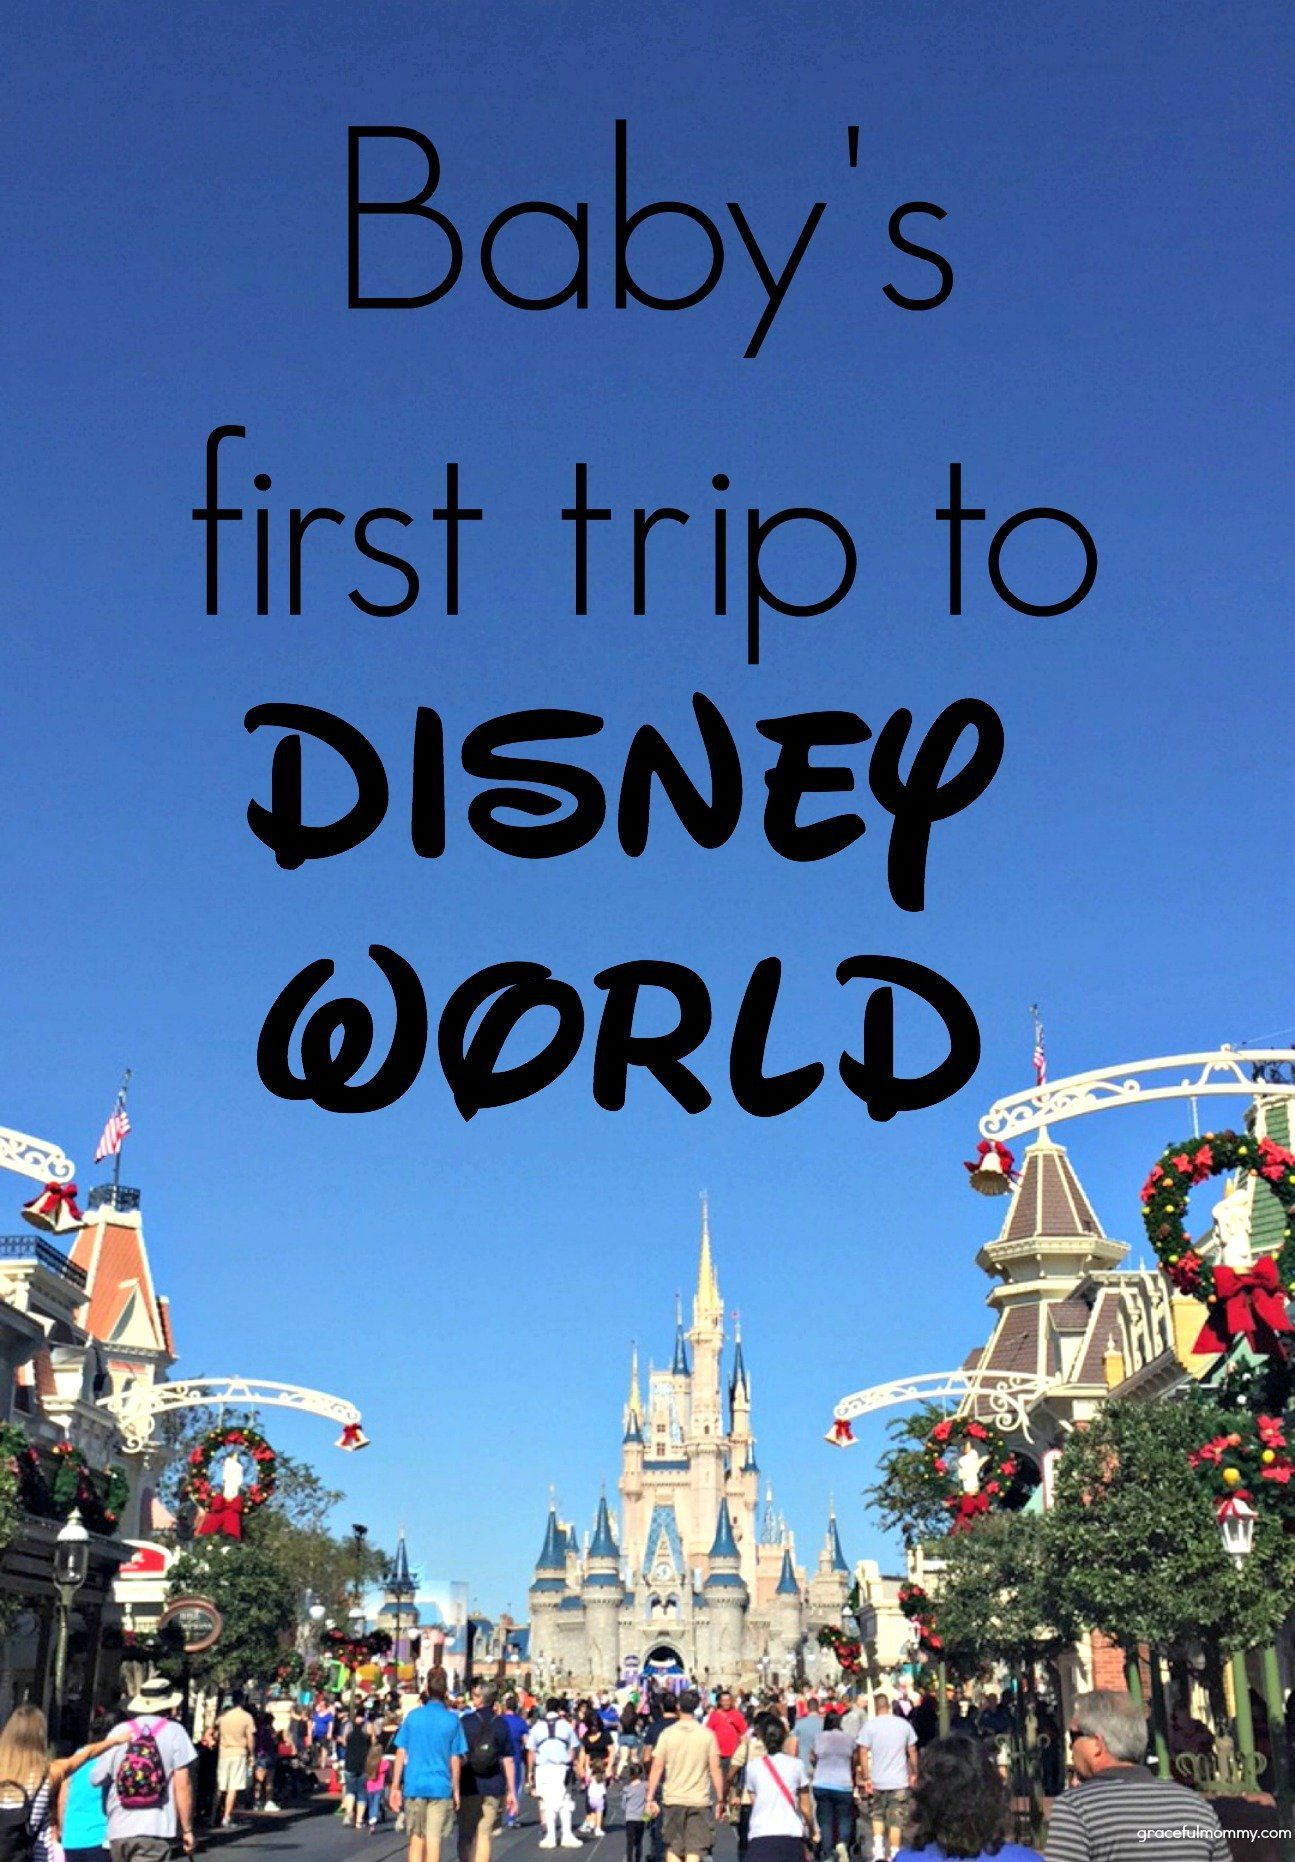 Babys first trip to Disney World Great tips and ideas on